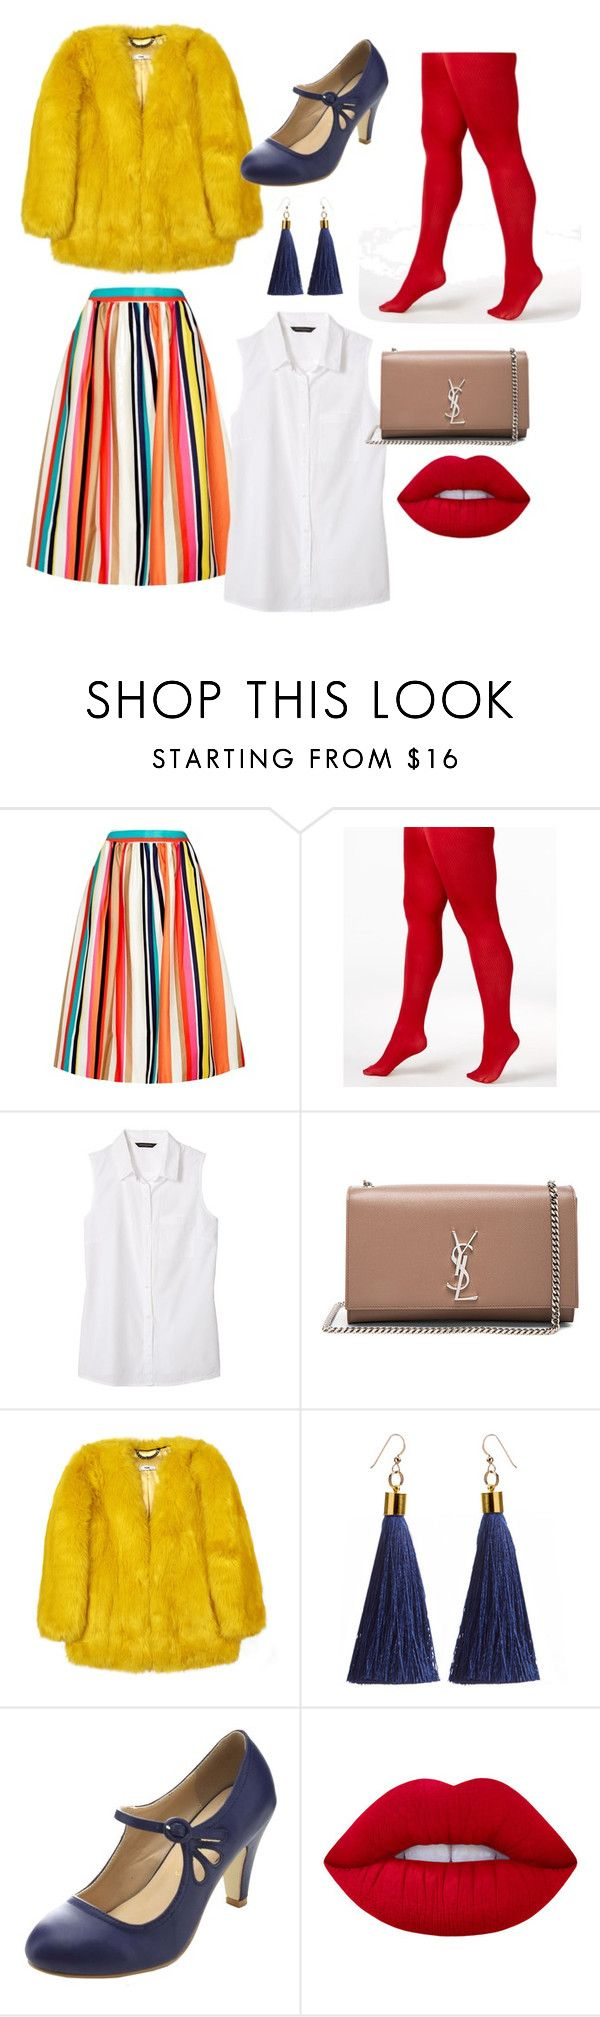 """""""Whimsical."""" by emiam ❤ liked on Polyvore featuring Alice + Olivia, Berkshire, Banana Republic, Yves Saint Laurent, Chase & Chloe and Lime Crime"""